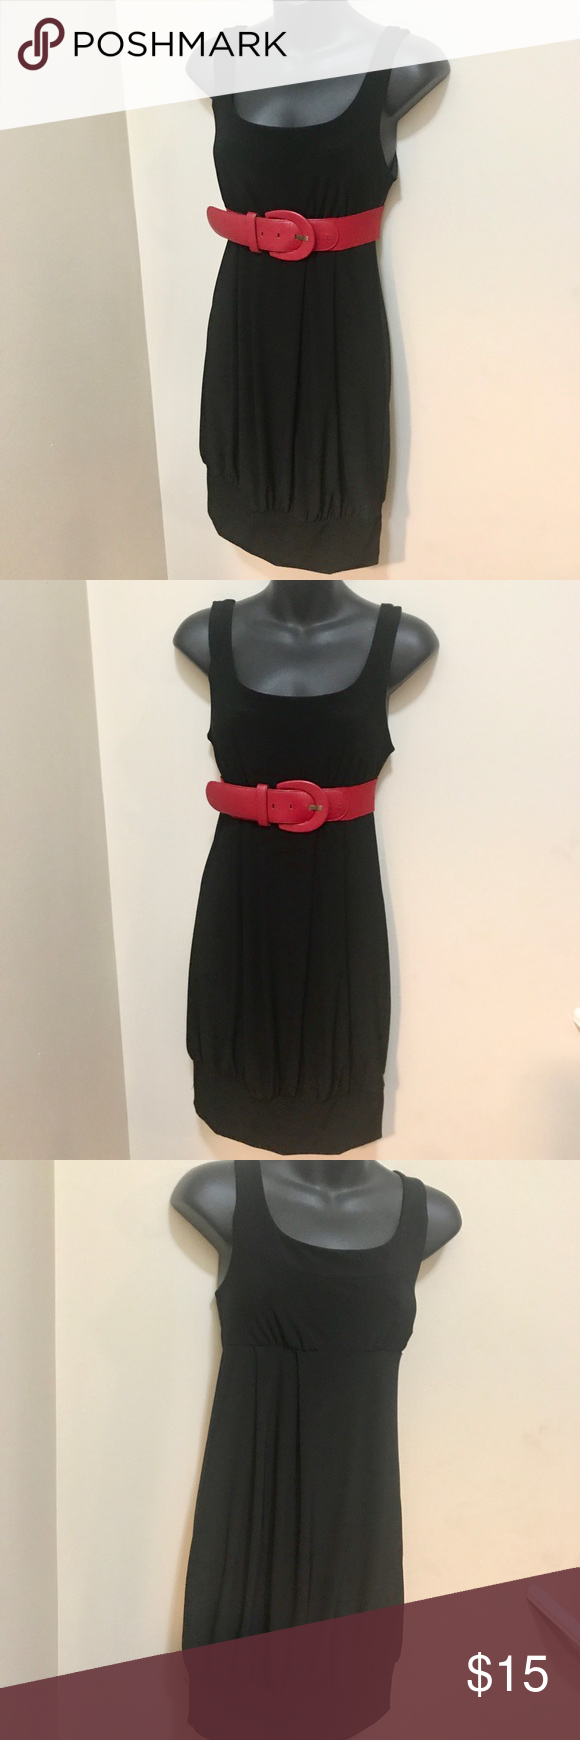 Nwt maurices black dress smallmed red belt tank shirt and